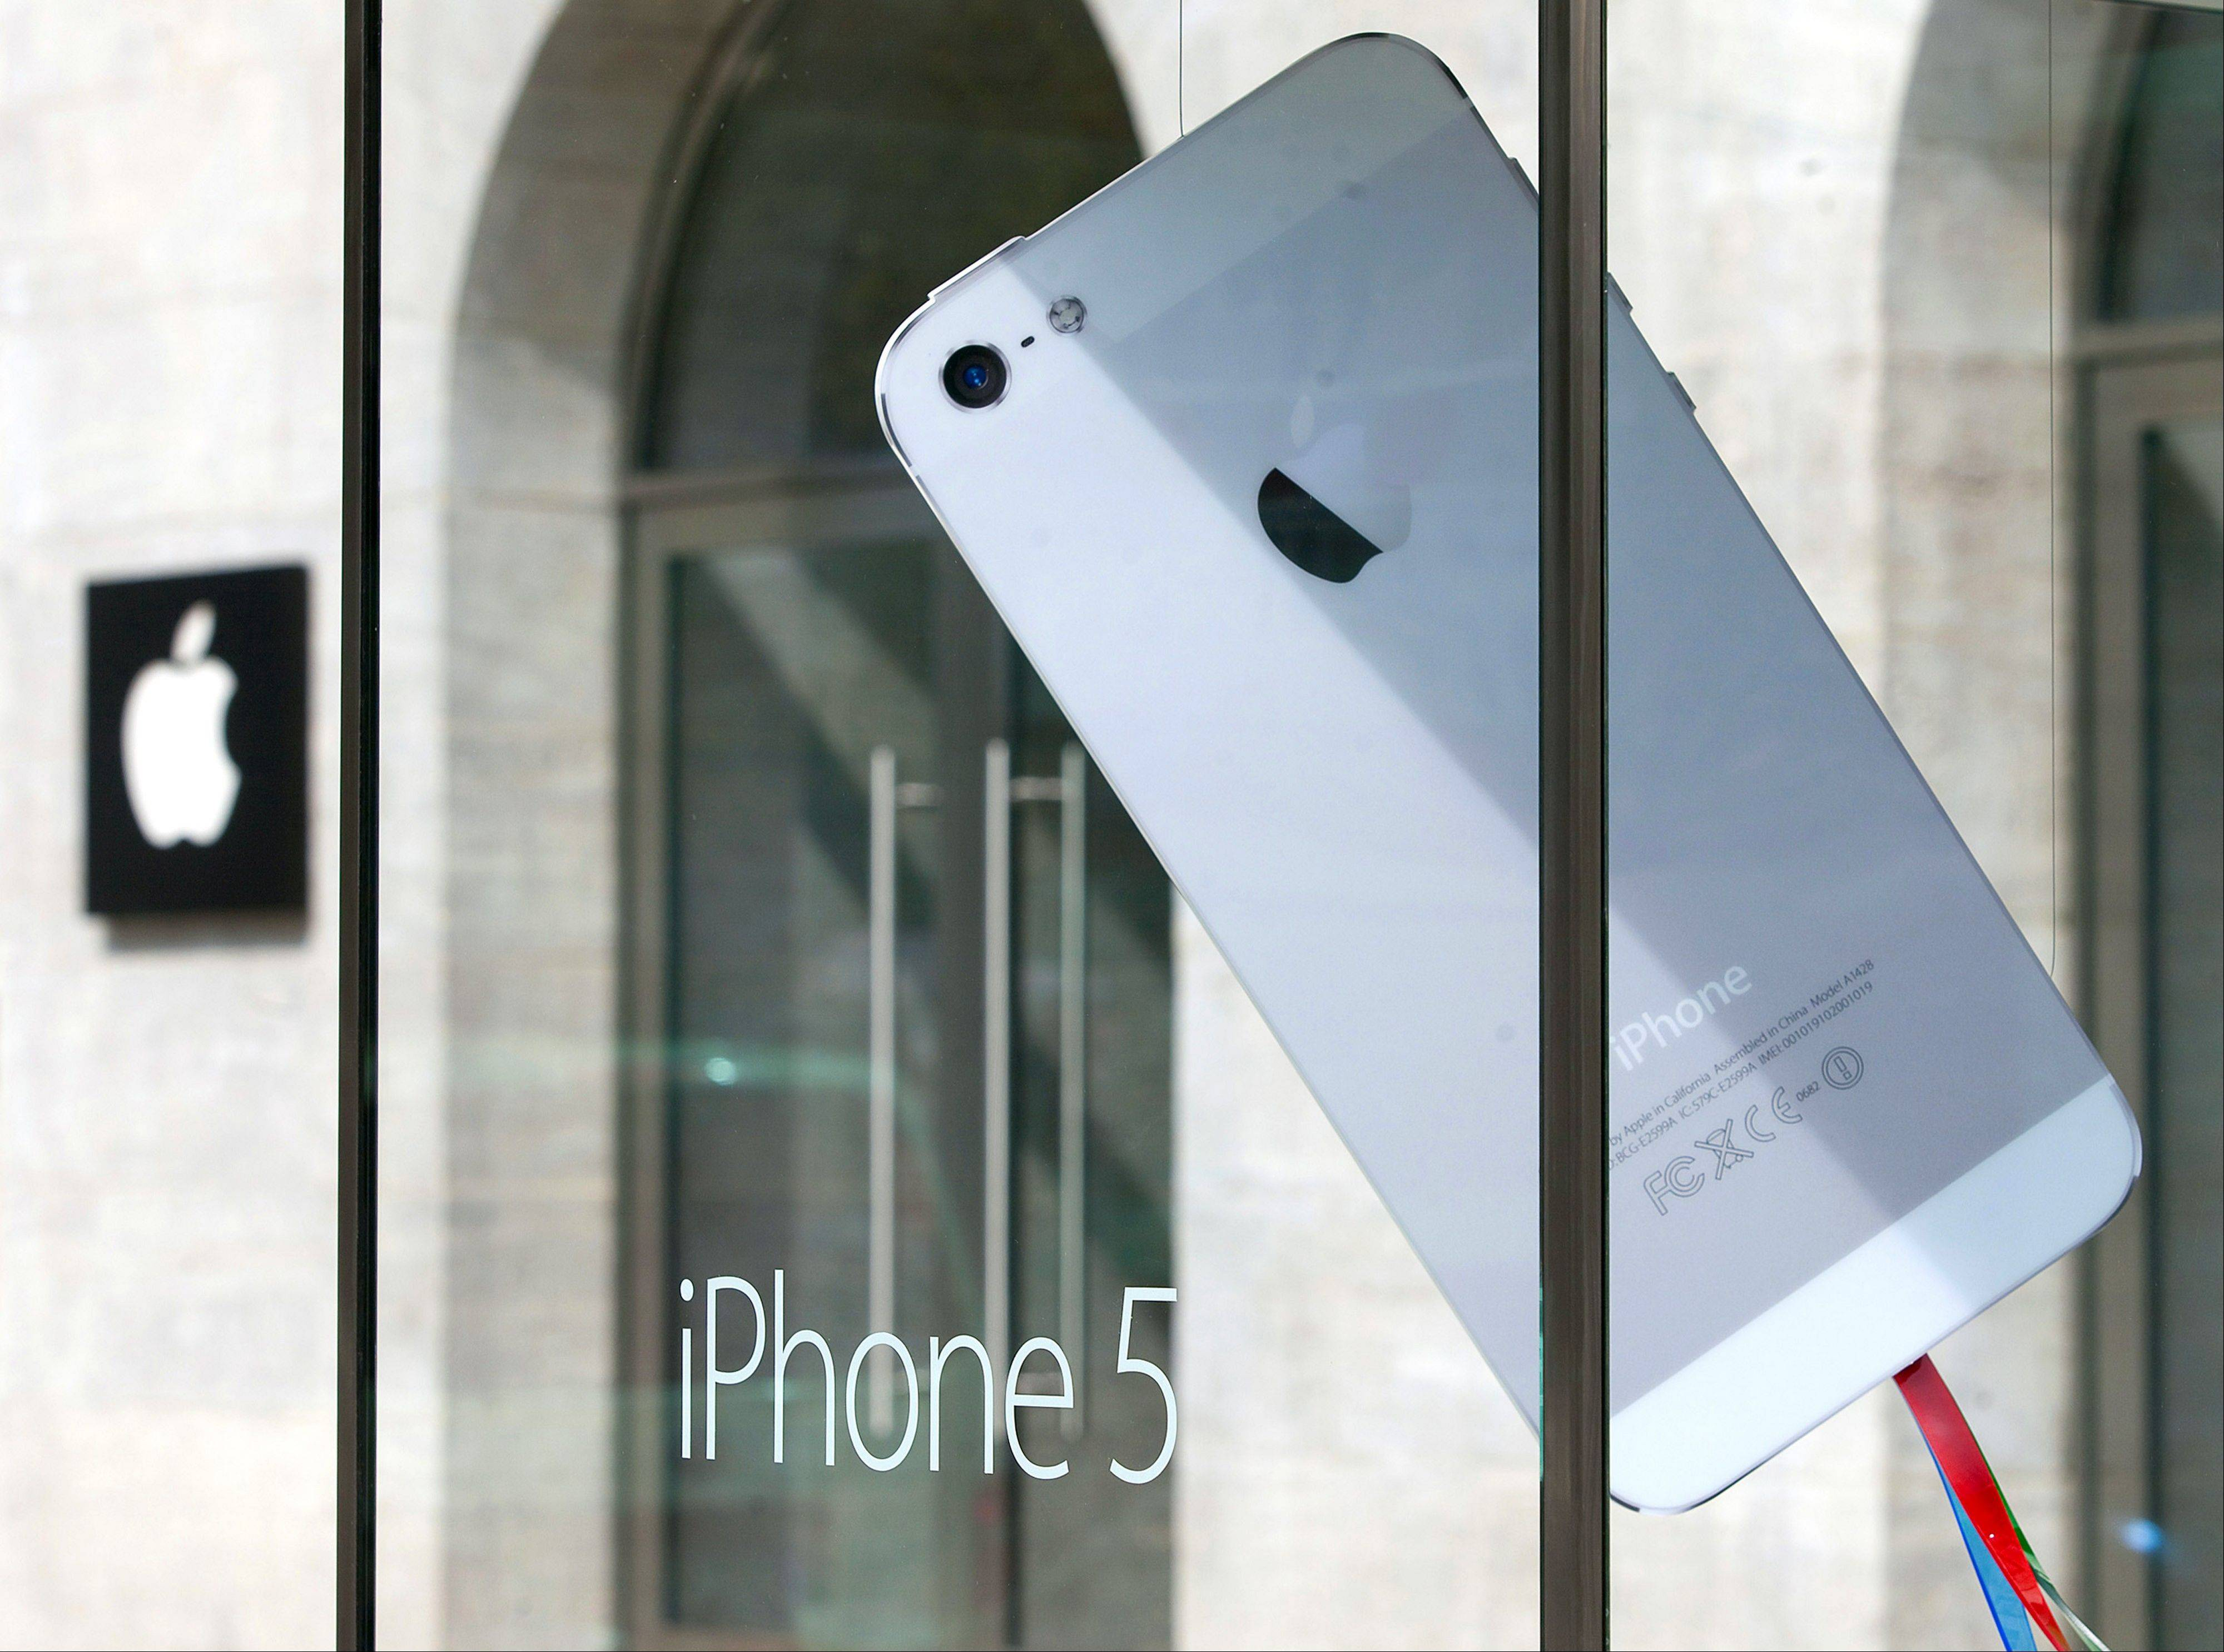 The Defense Department said in a statement that it has approved the use of government-issued Apple products running a version of the iOS 6 mobile platform.